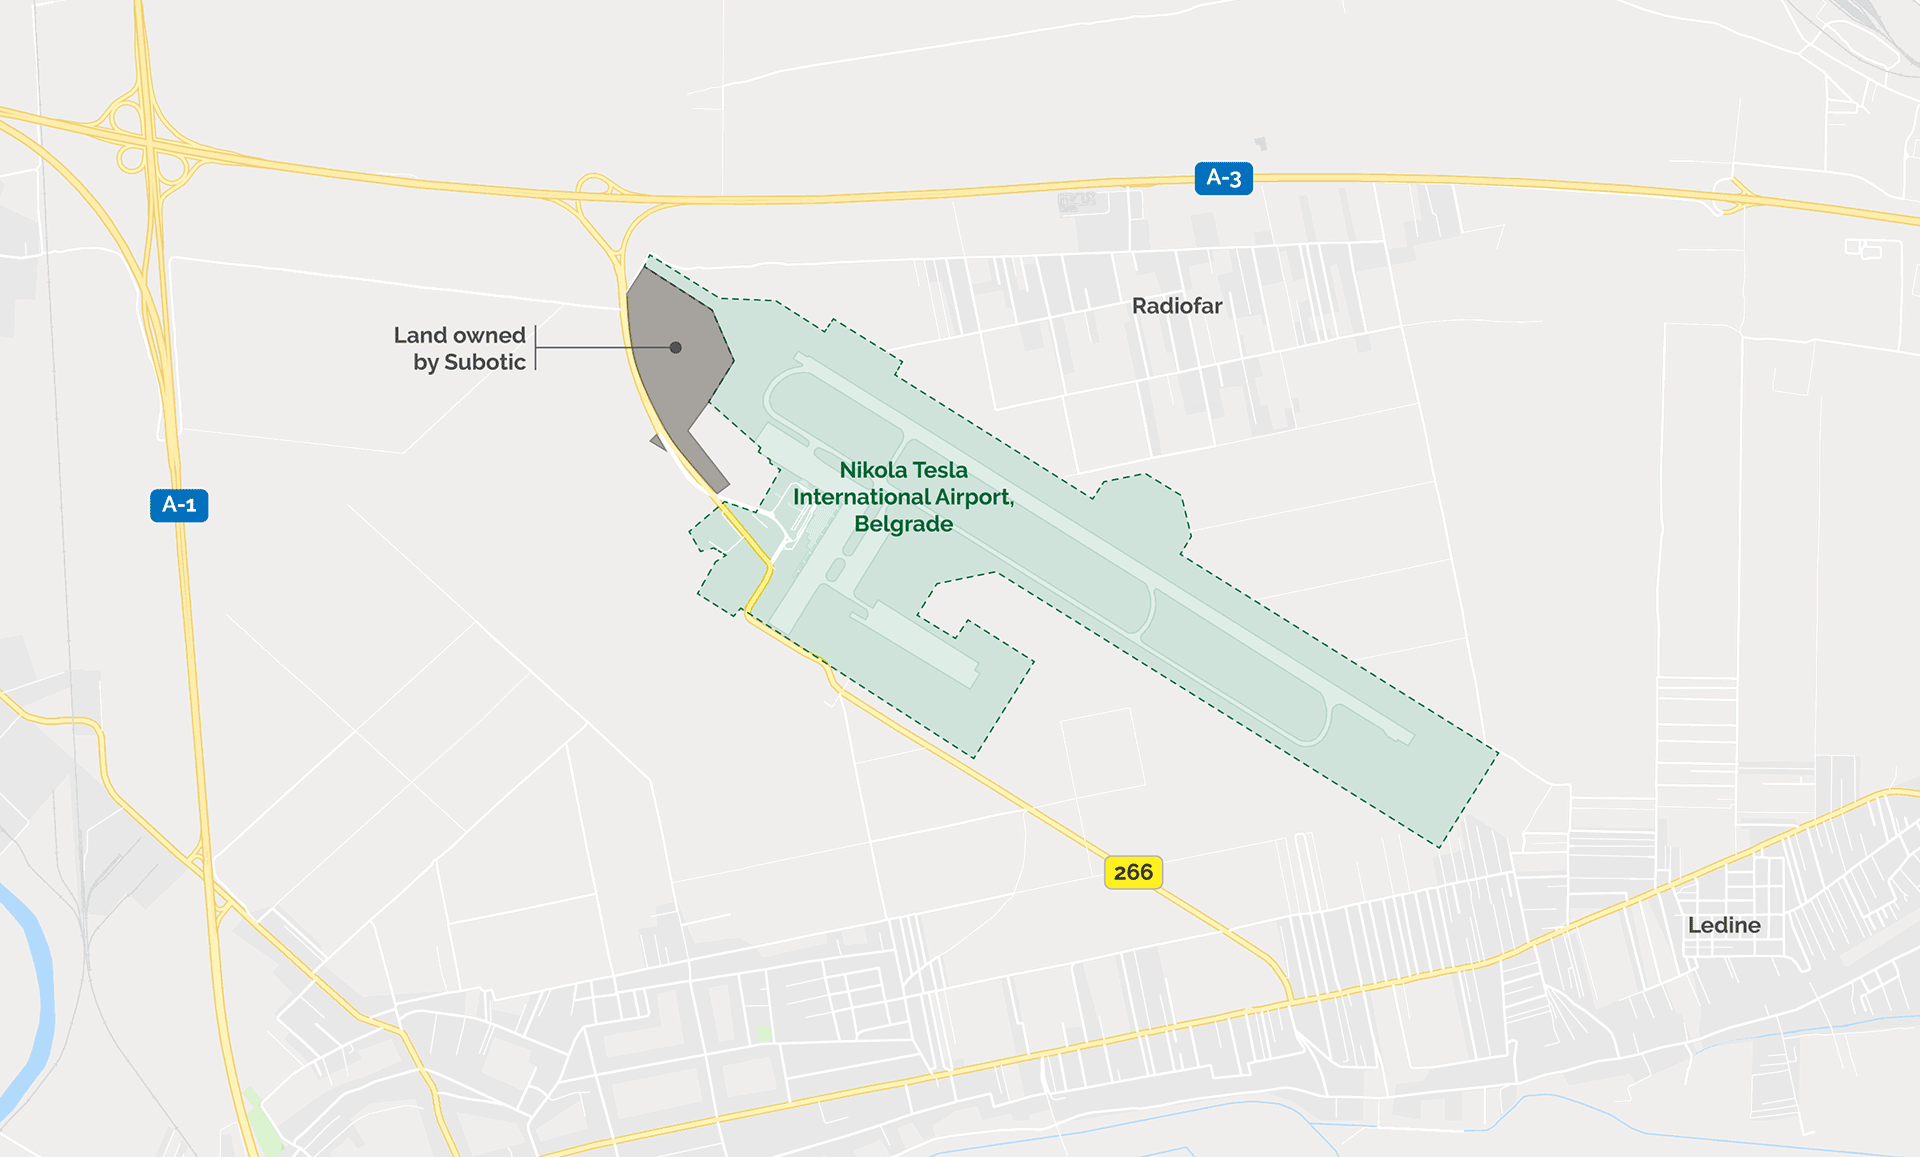 The 28 hectares of Stanko Subotic's land slated for airport expansion. (Map: Edin Pasovic, OCCRP)